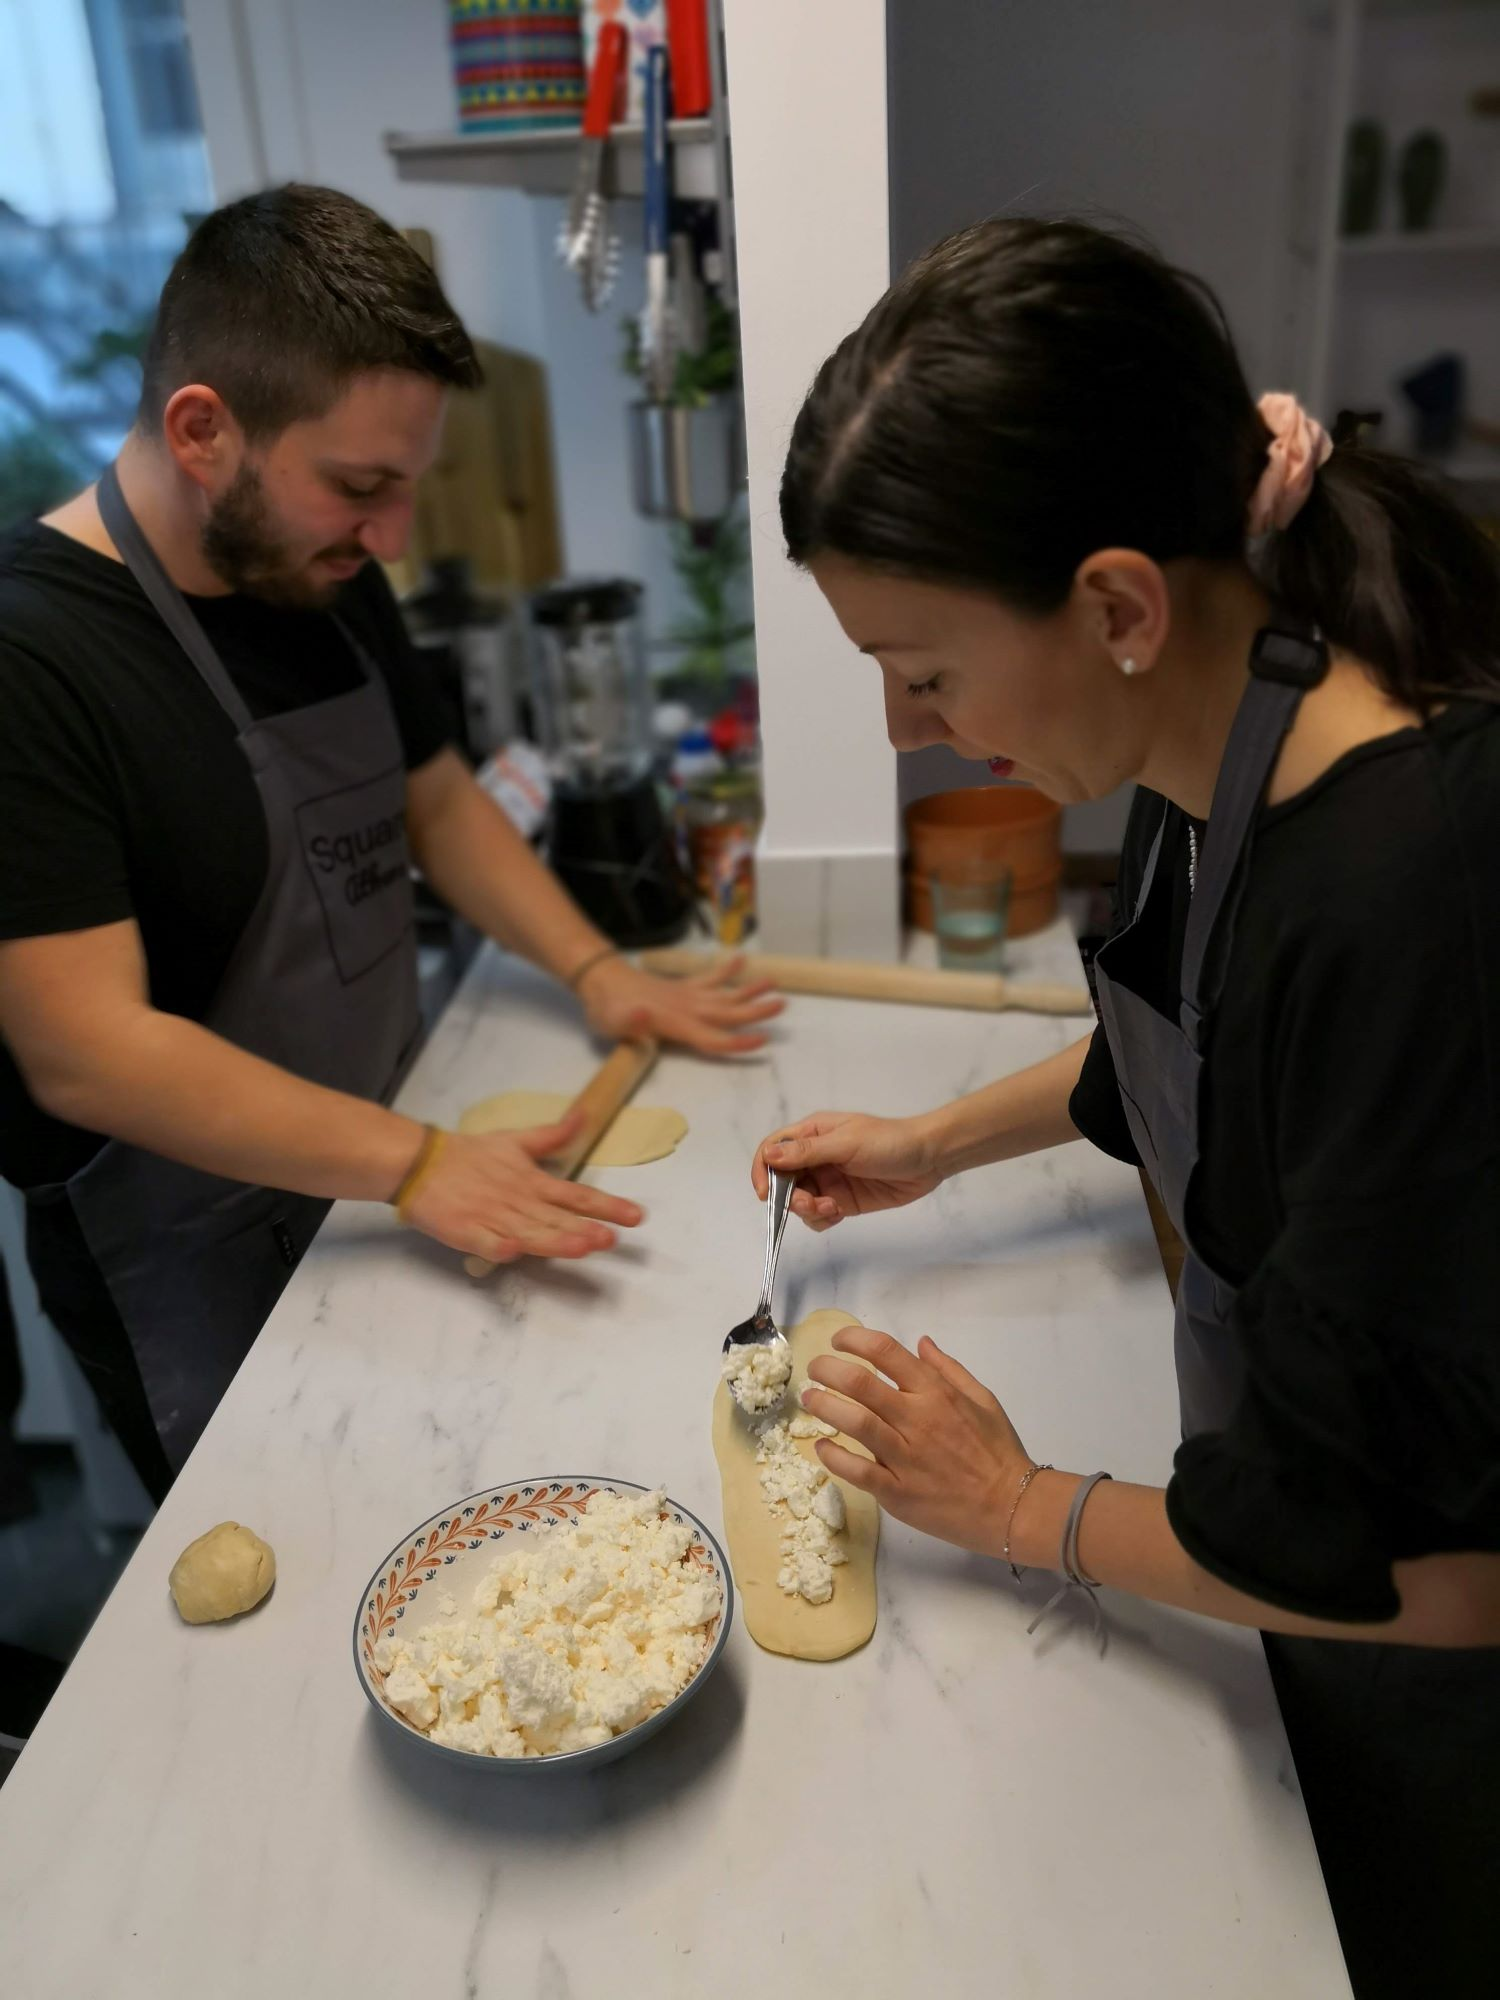 Learn how to bake a Greek pita in our  cooking workshop  under the guidance of a professional chef.